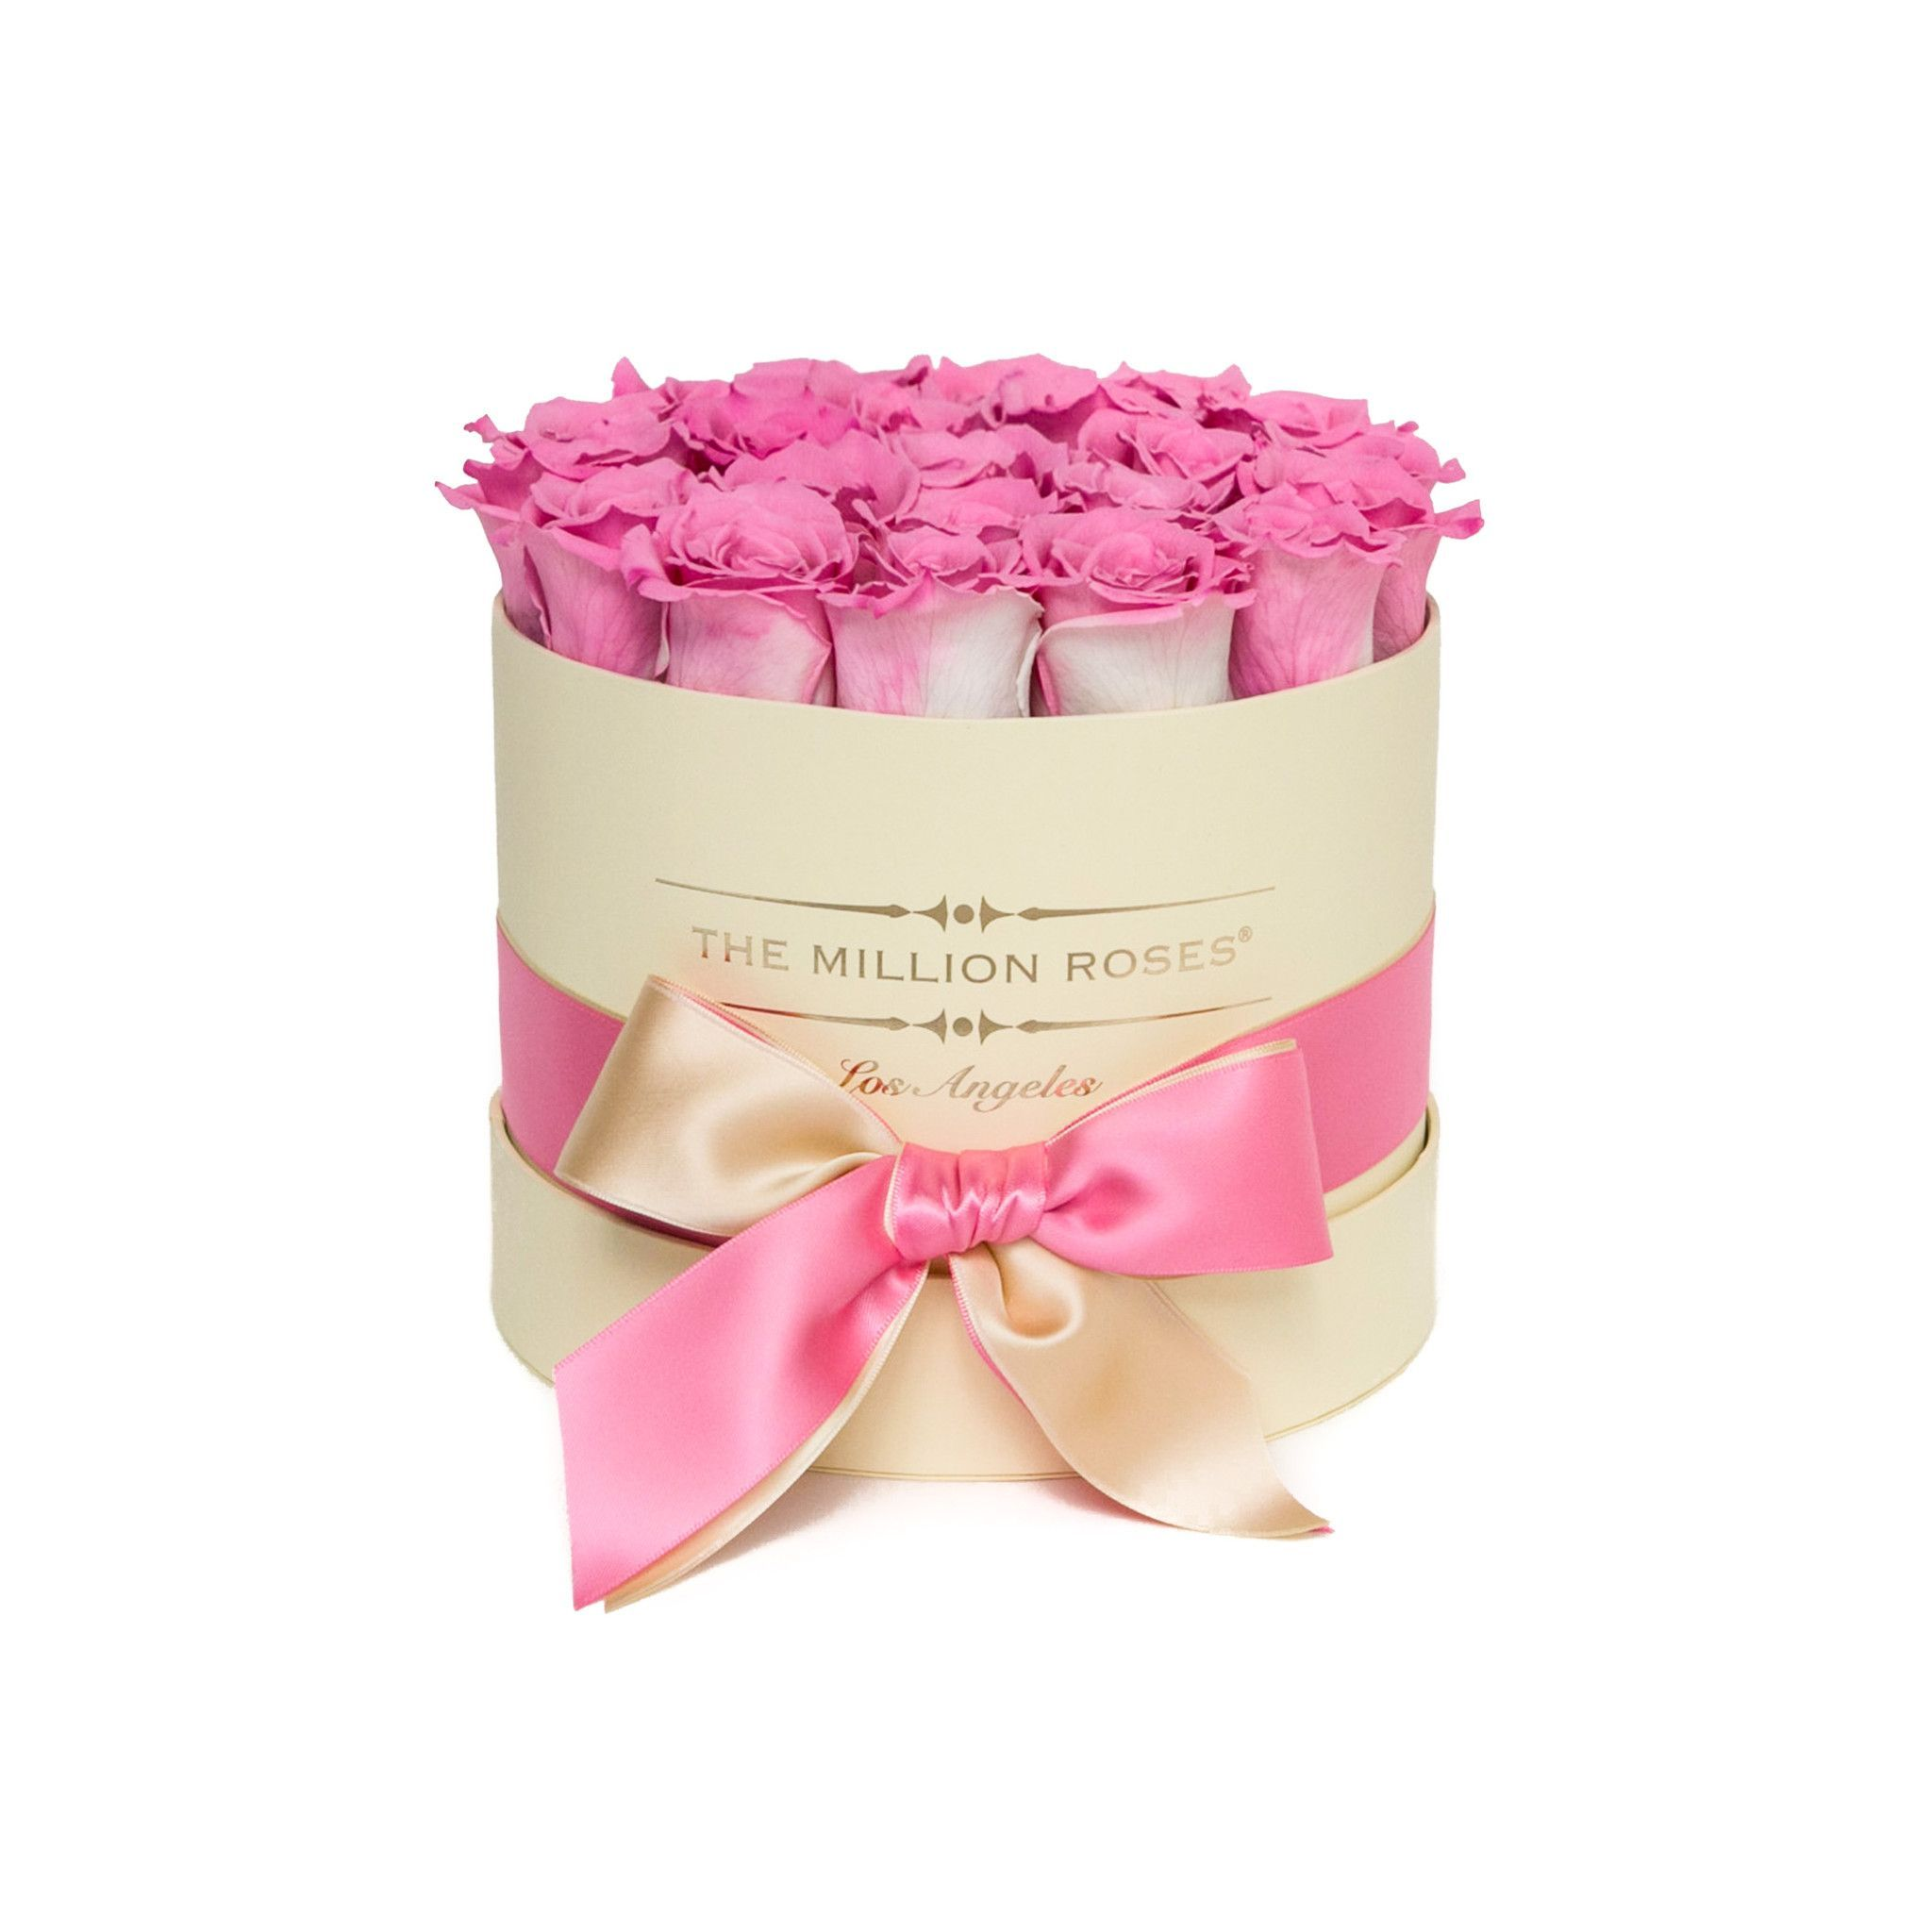 small round box - vanilla - pink-candy ETERNITY roses | Pink candy ...